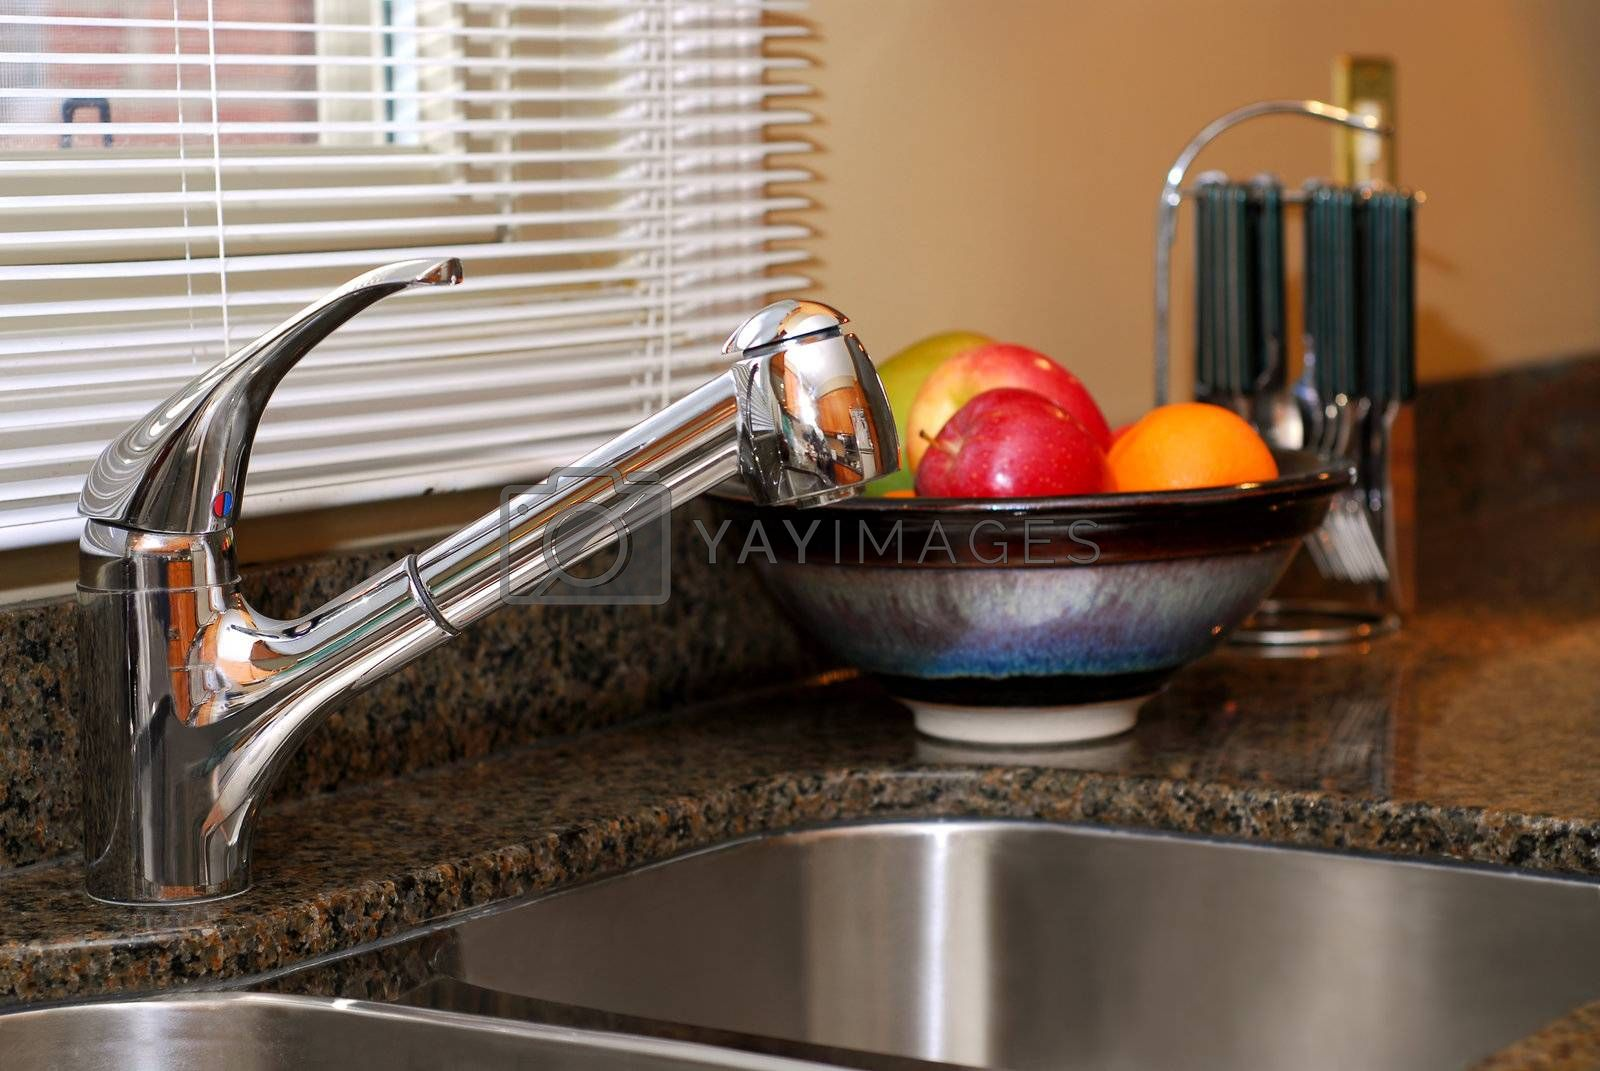 Interior of a modern kitchen with stainless steel double sink